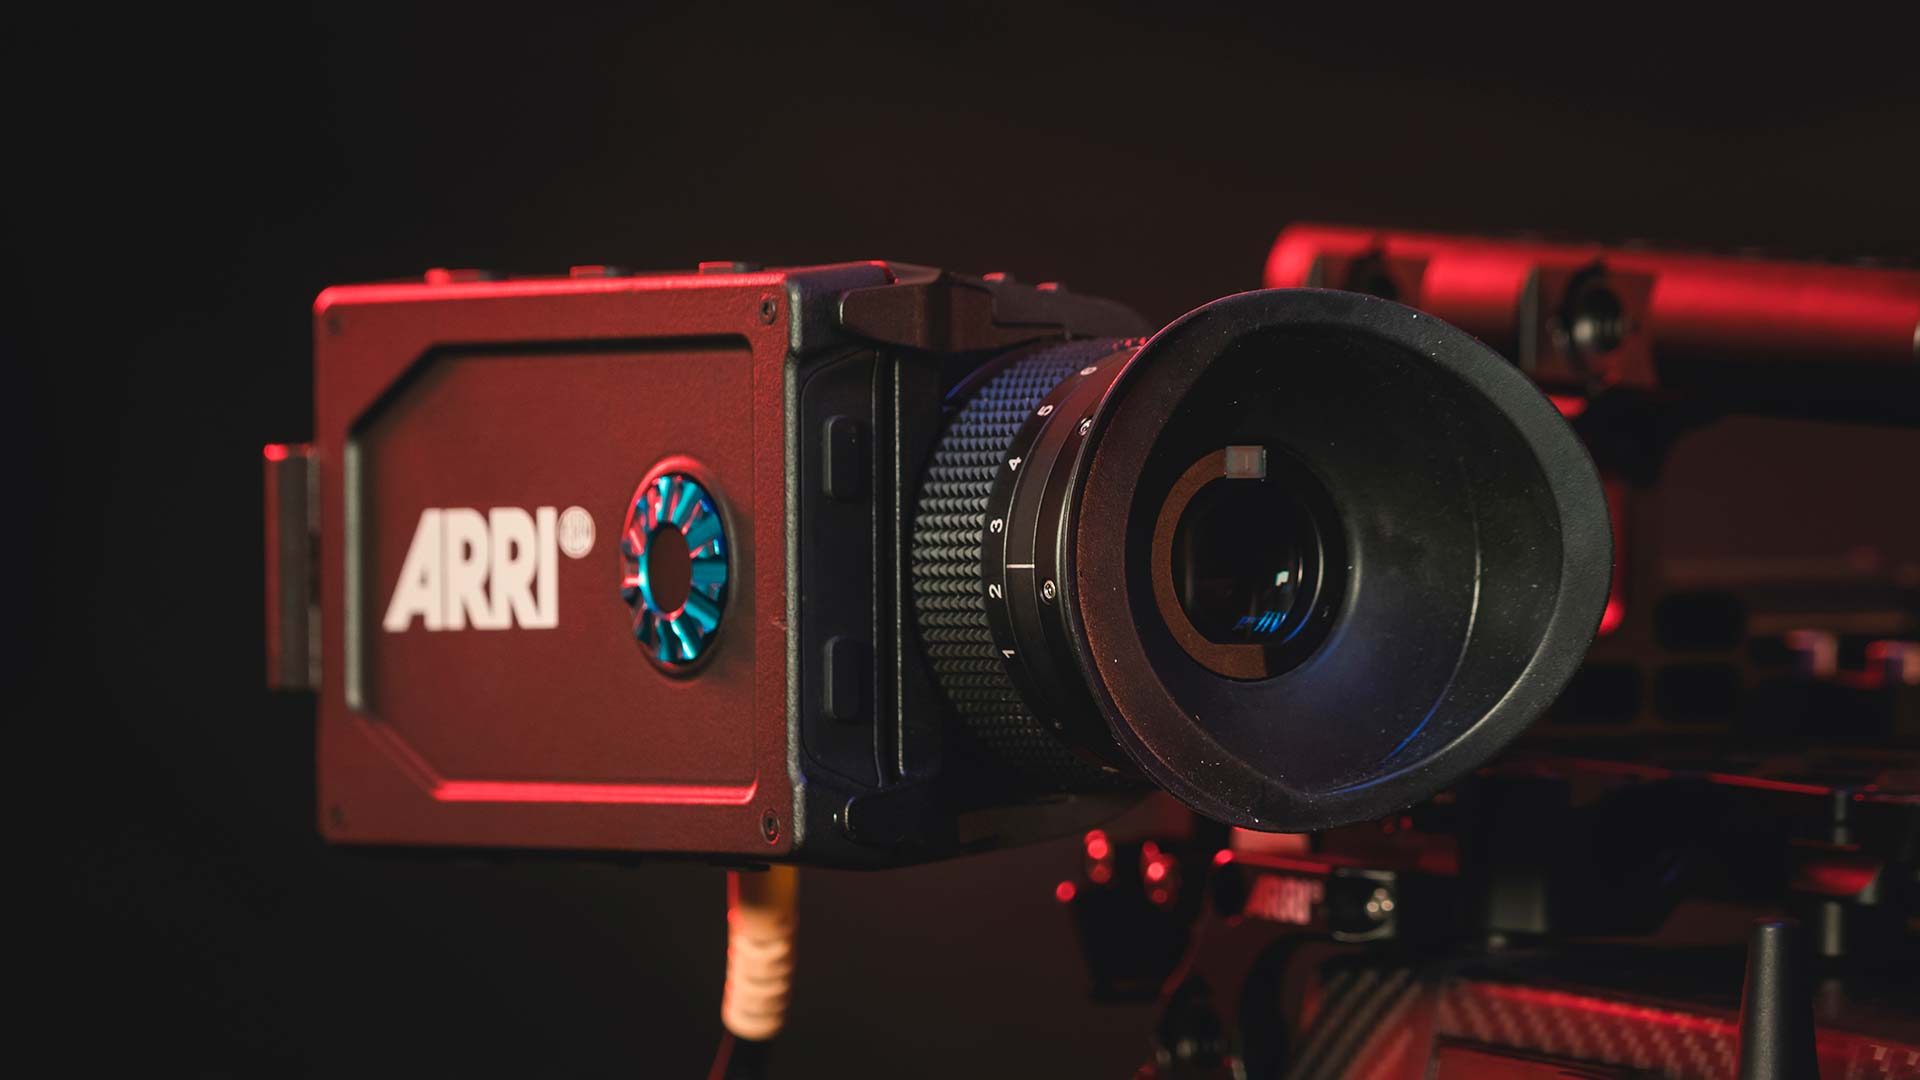 The film and video production industry is going through a boom. Image: